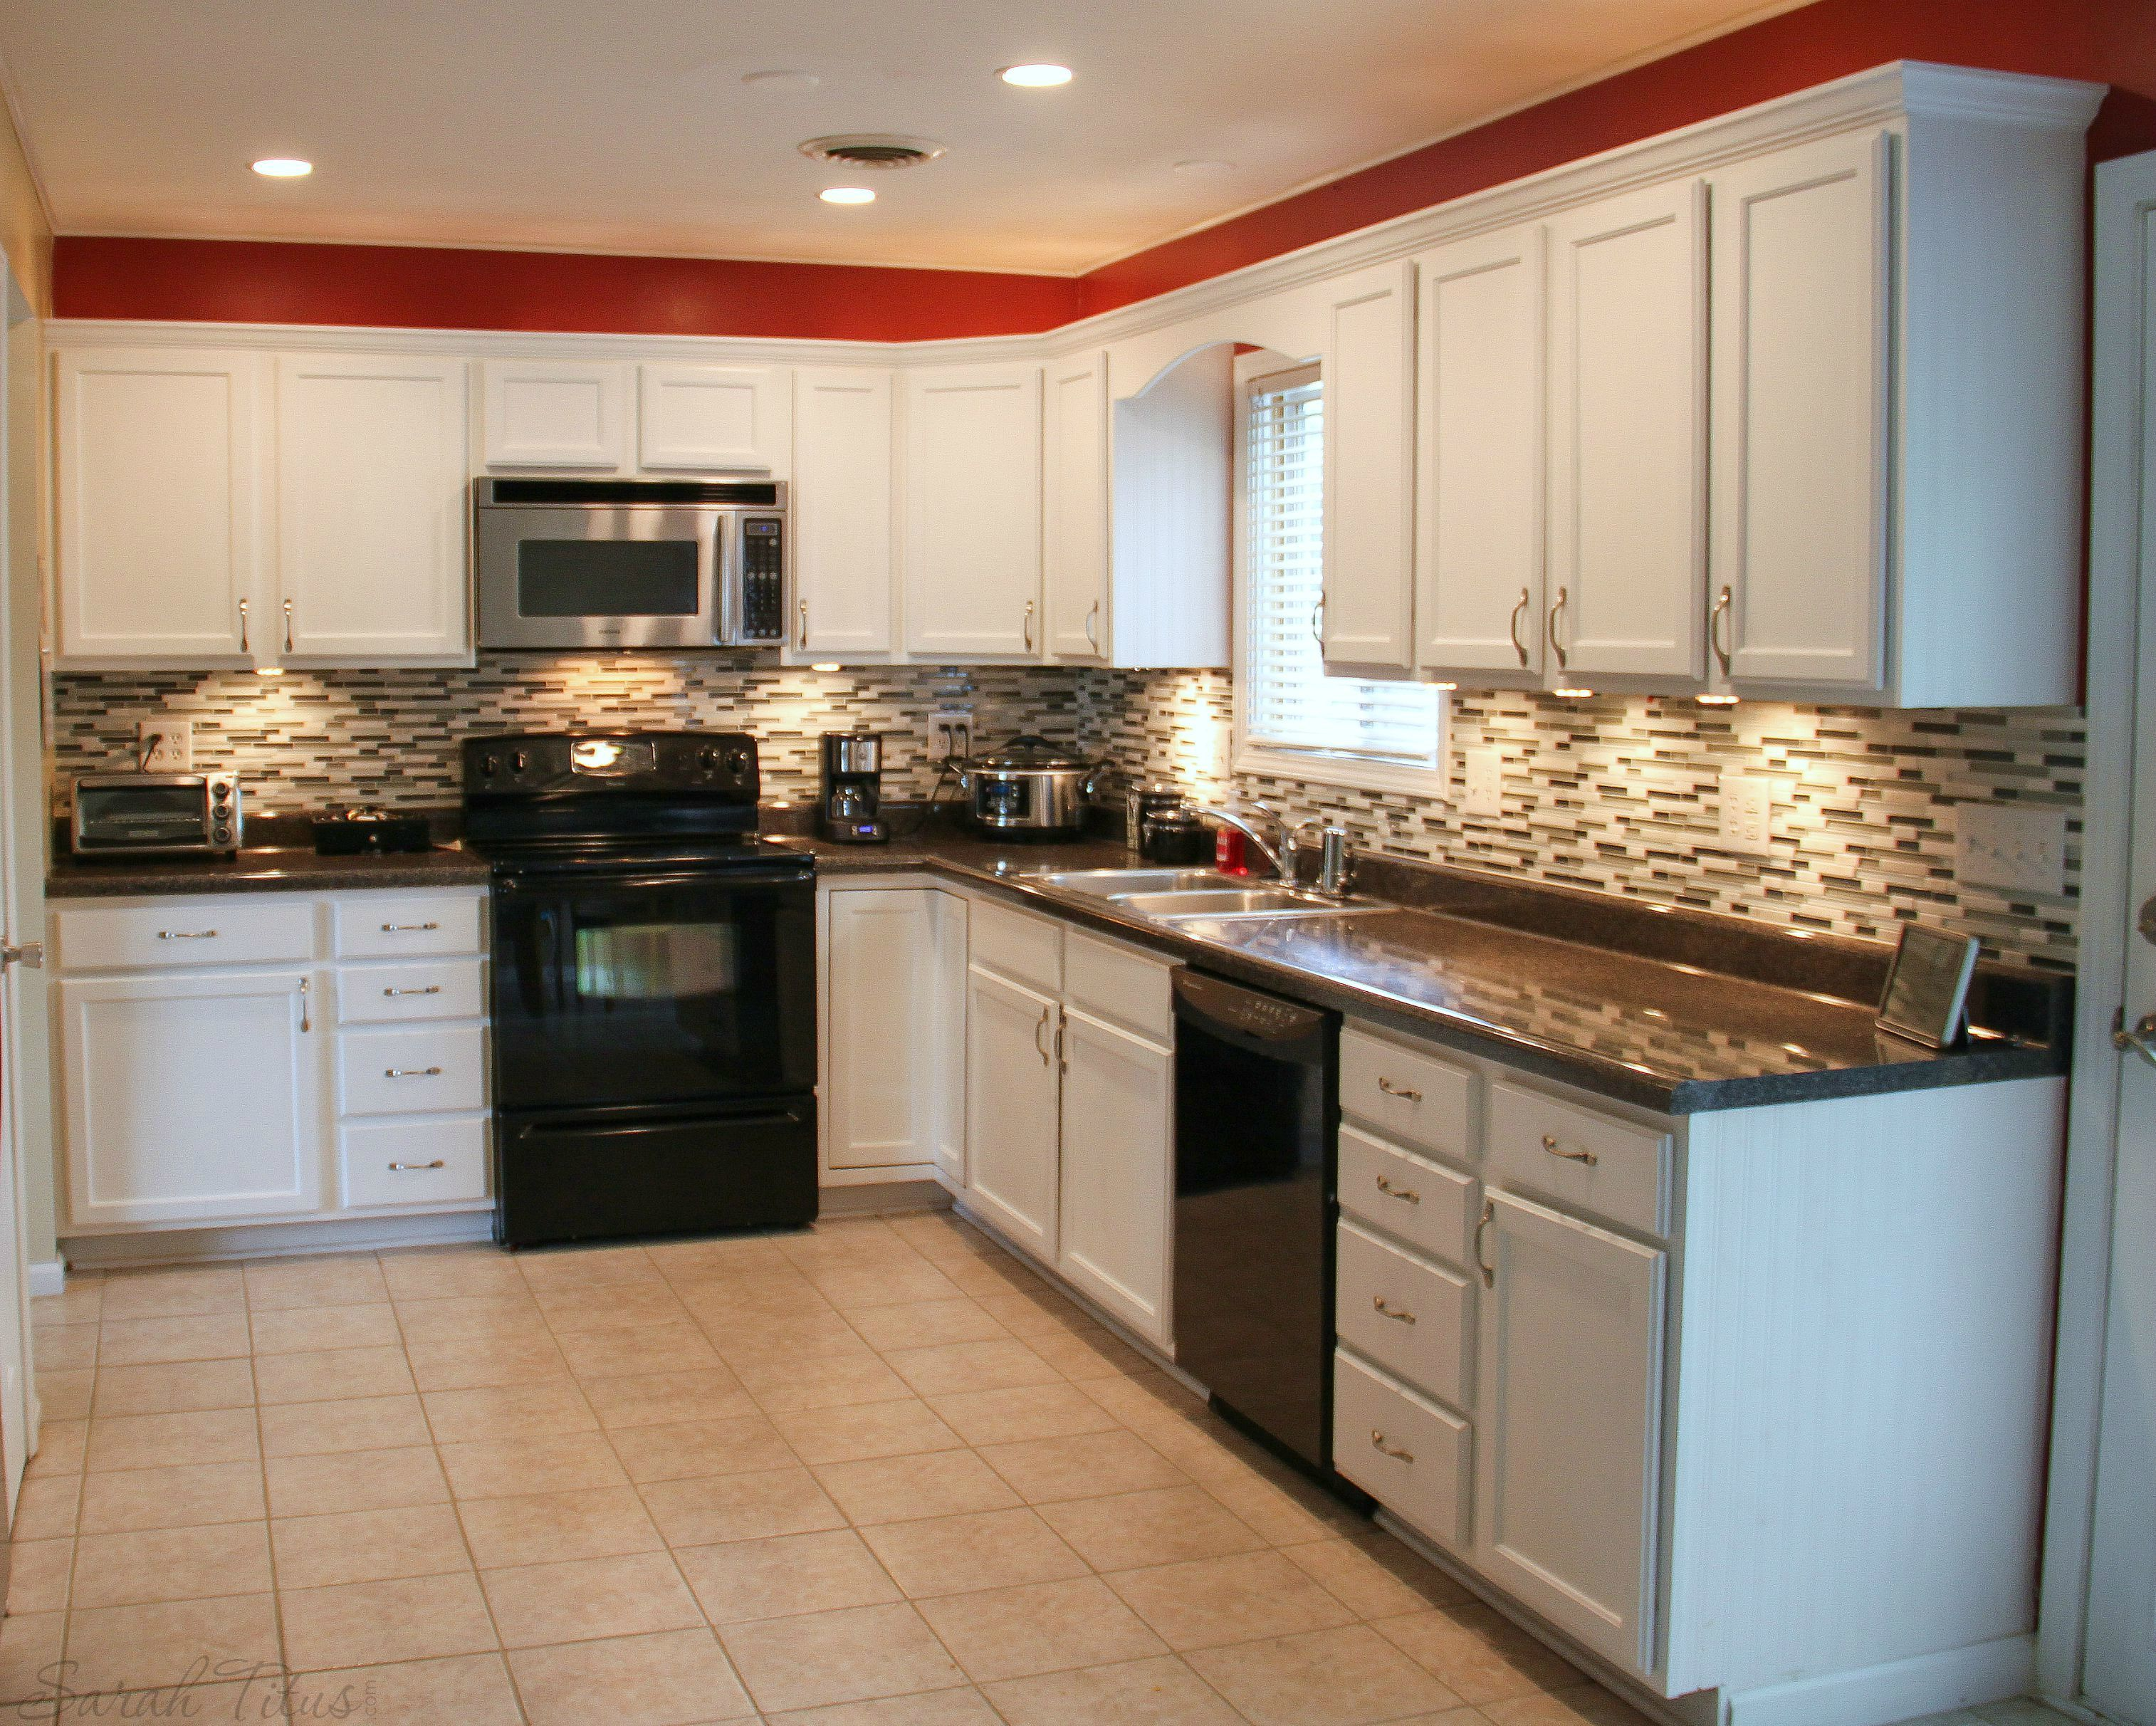 Most Kitchen Renovations Are Very Expensive But This Trick Can Classy Cheap Kitchen Remodel Review